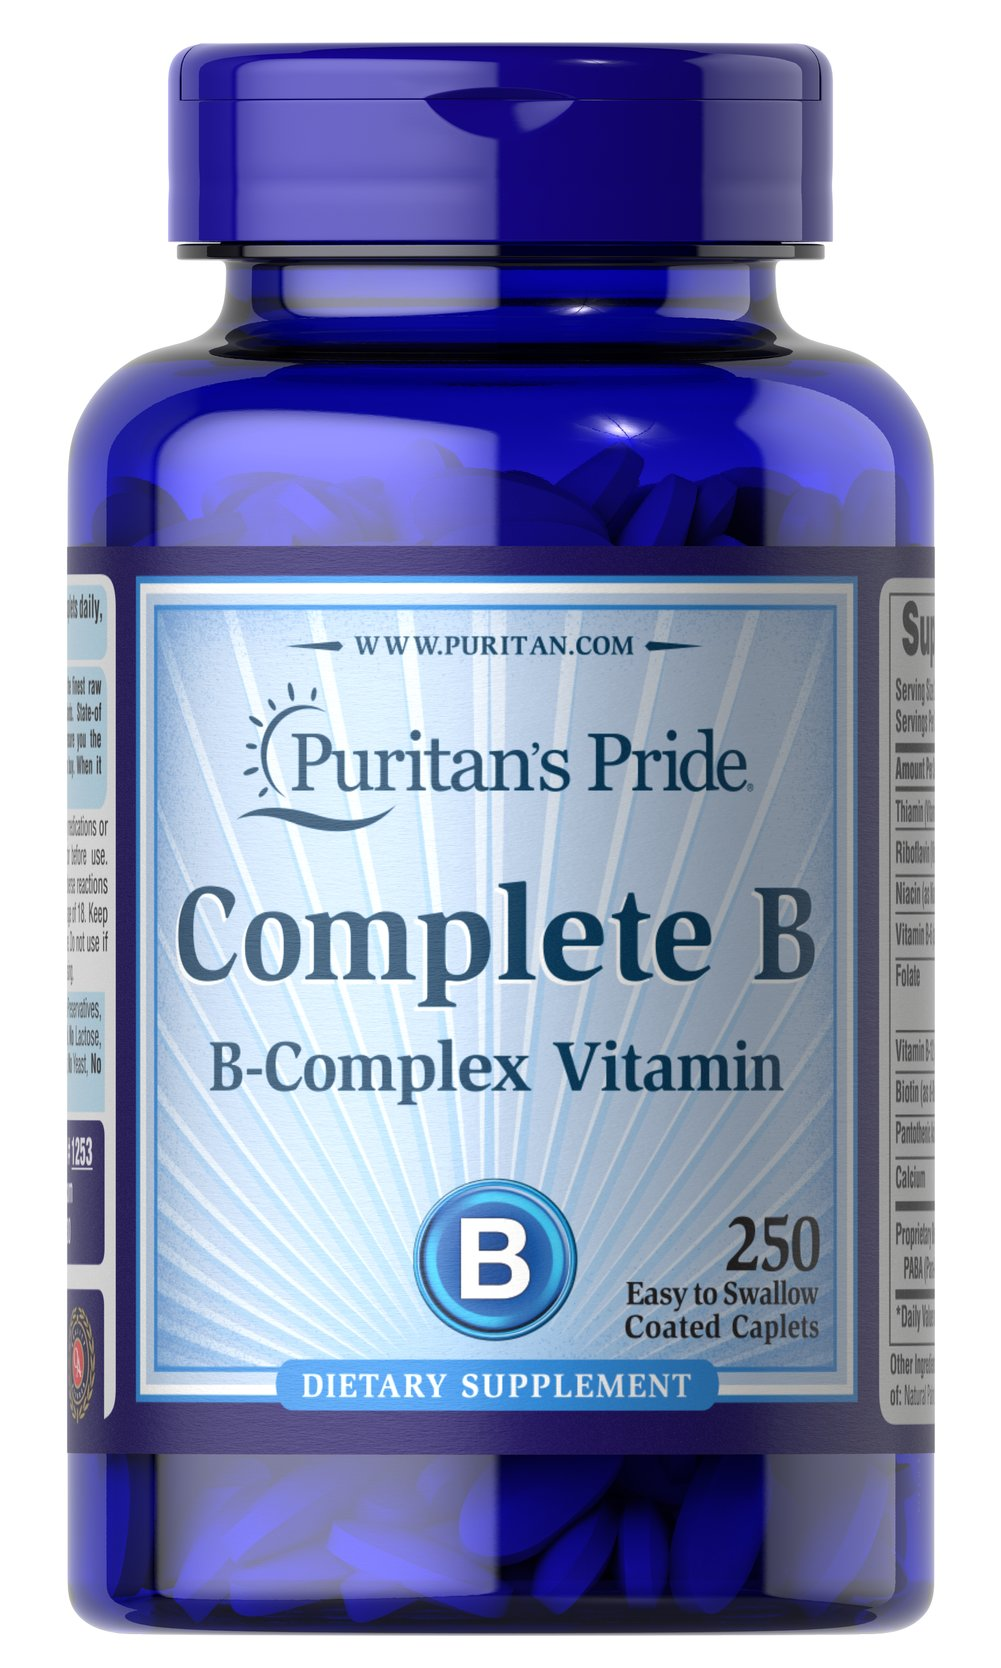 Complete B (Vitamin B Complex) <p>Complete Vitamin B Complex provides seven important B vitamins in just two caplets without sugar, starch, artificial colors or flavors. You get the entire B family in this sodium-free tablet the best B vitamin nutrition you can buy! Complete B can give you the peace of mind you deserve.</p> 250 Caplets  $22.38